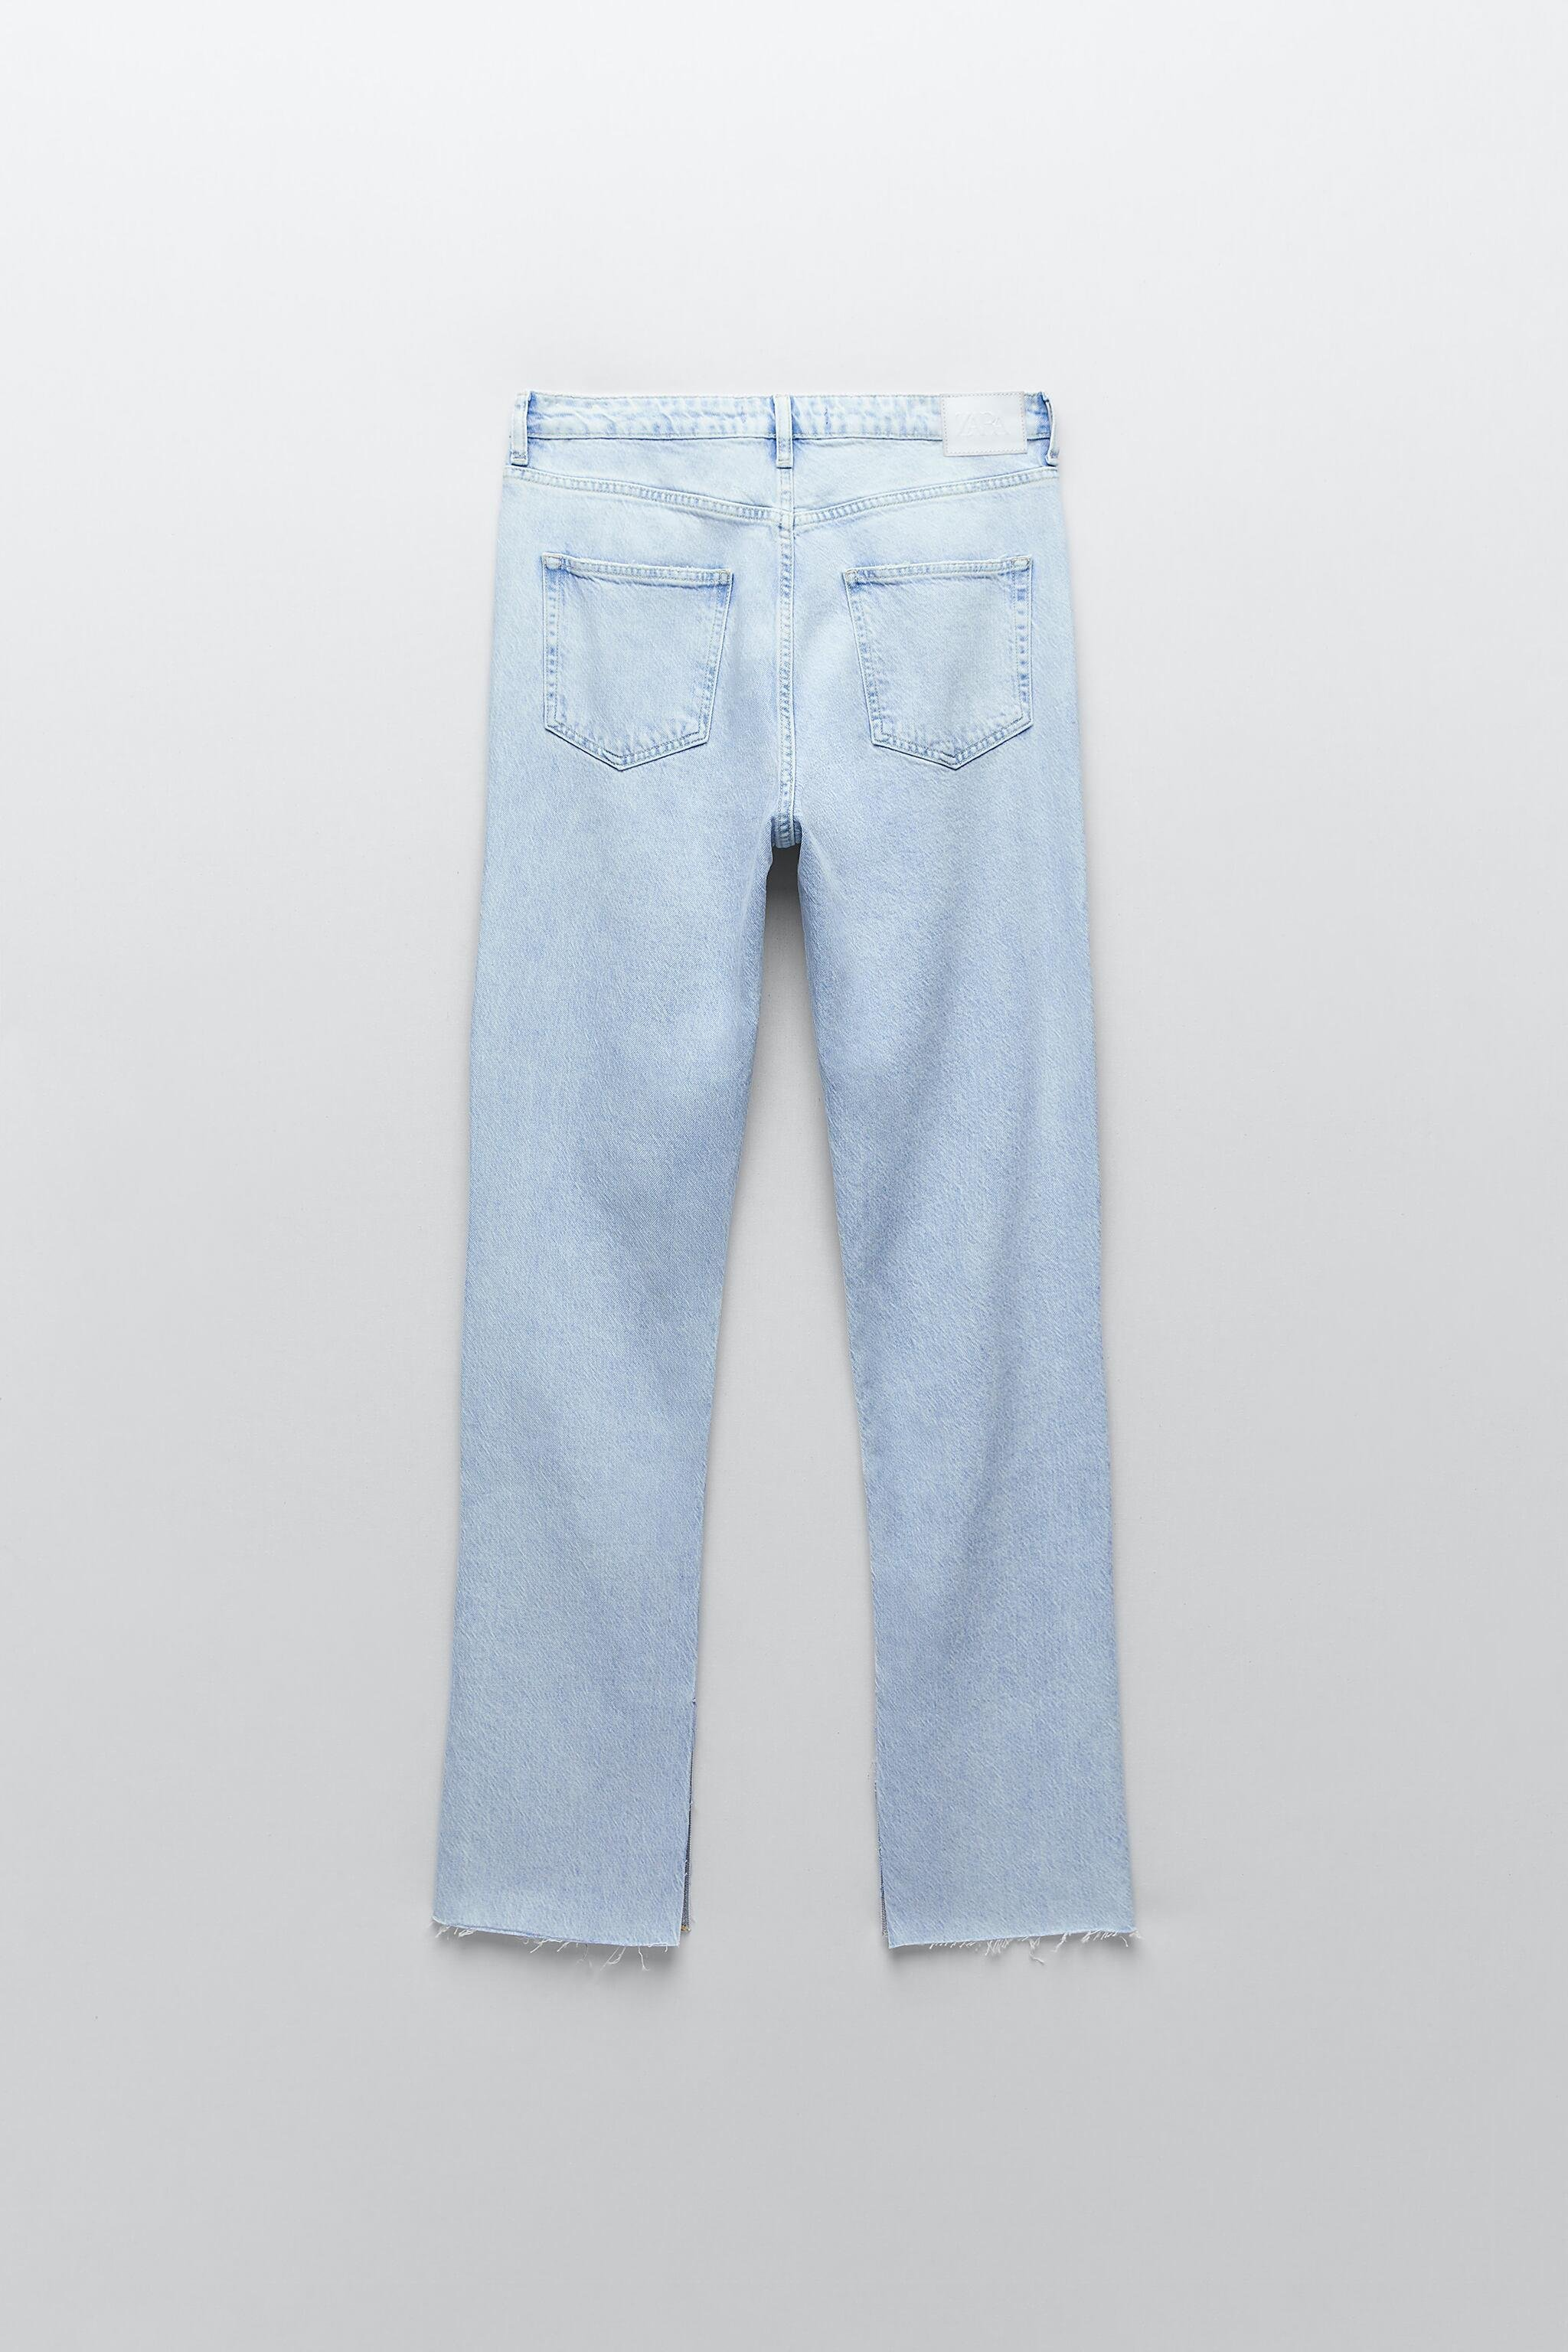 Z1975 FLARED RIPPED SLIM FIT JEANS 7